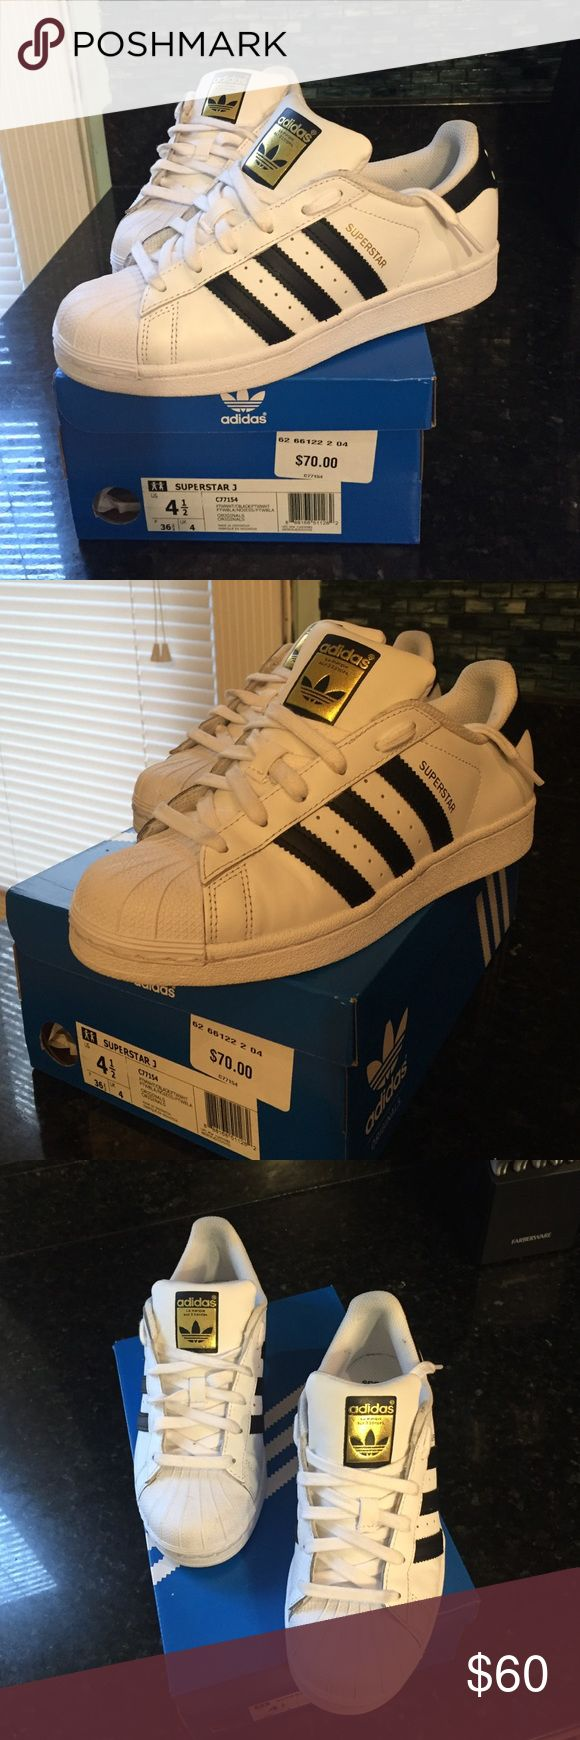 Adidas Superstar Shelltoes - White - Brand new only worn twice, too big on me and can not return. Size 4.5 in juniors fits a 6.5 women's size. I am usually a 6 or 6.5 and these are (unfortunately) a half a size too big on me. Adidas Shoes Sneakers